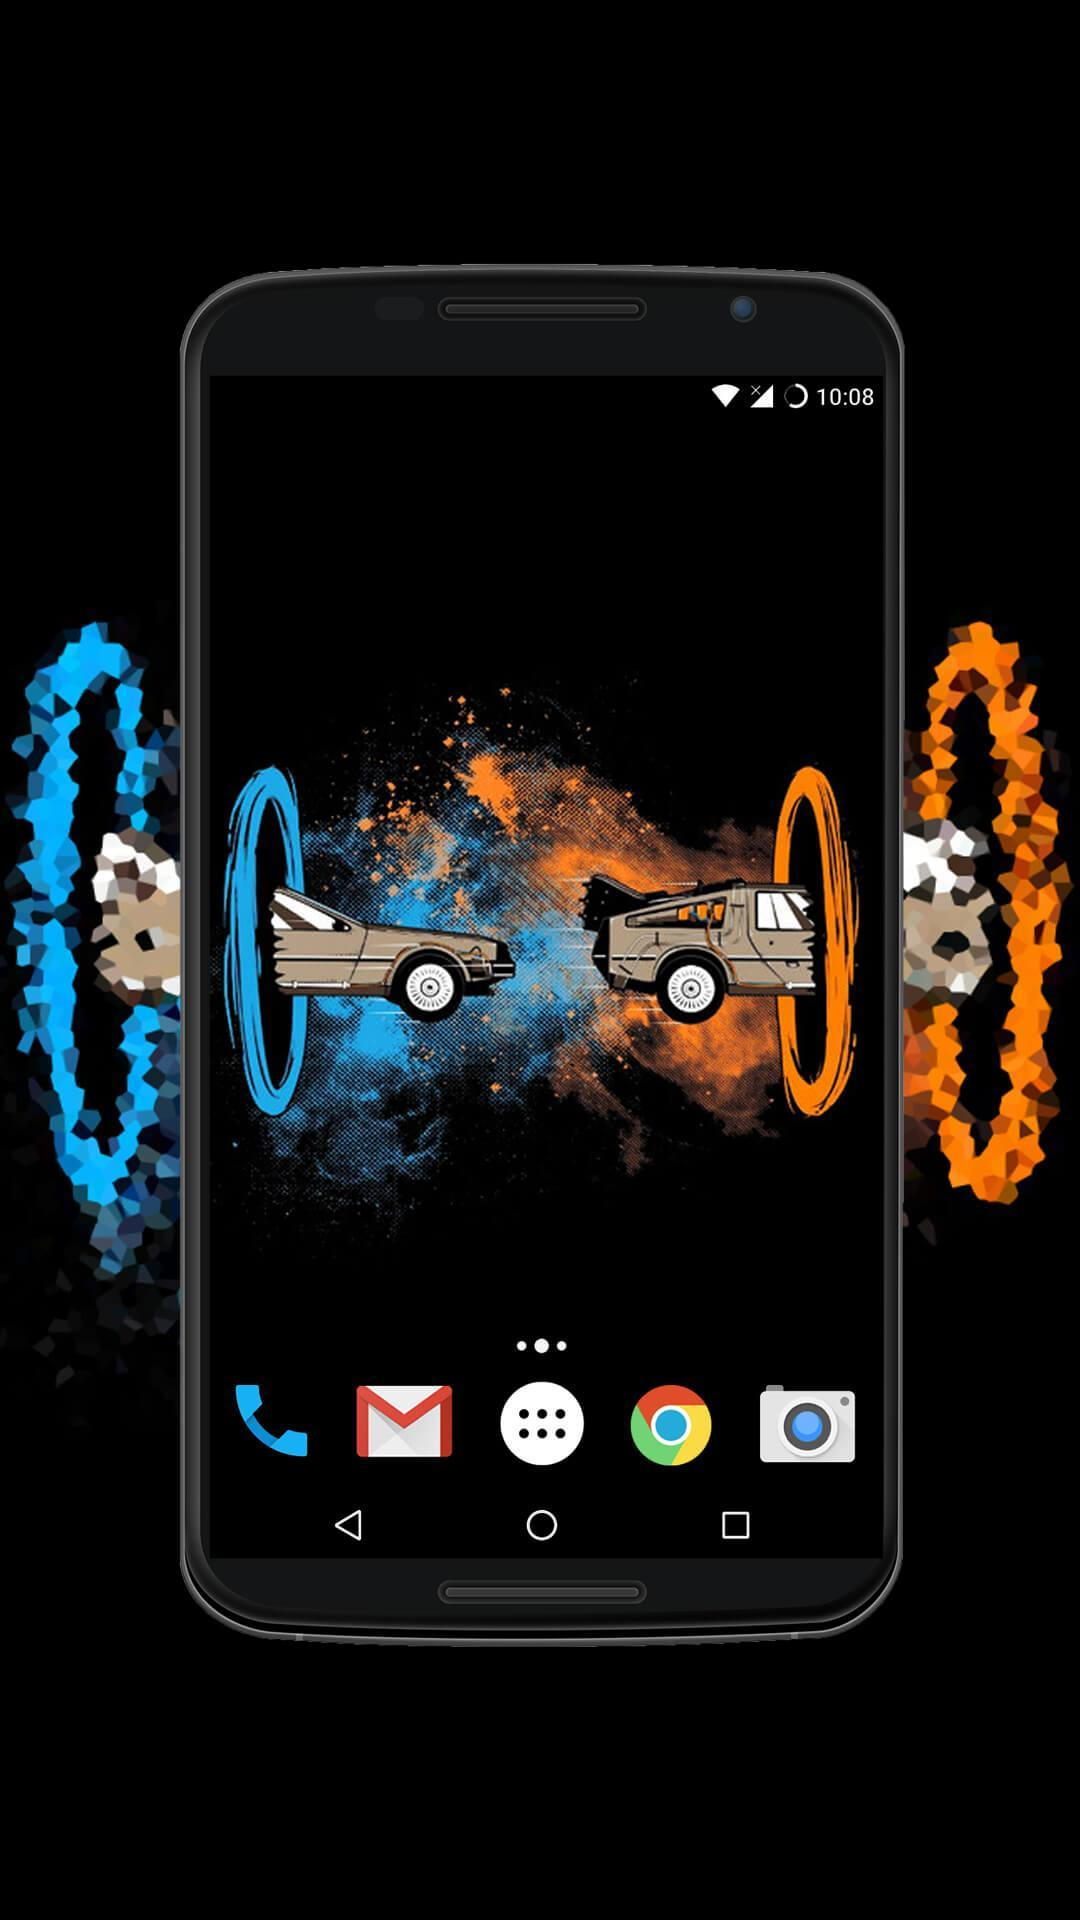 Portal 2 Wallpapers for Android - APK Download